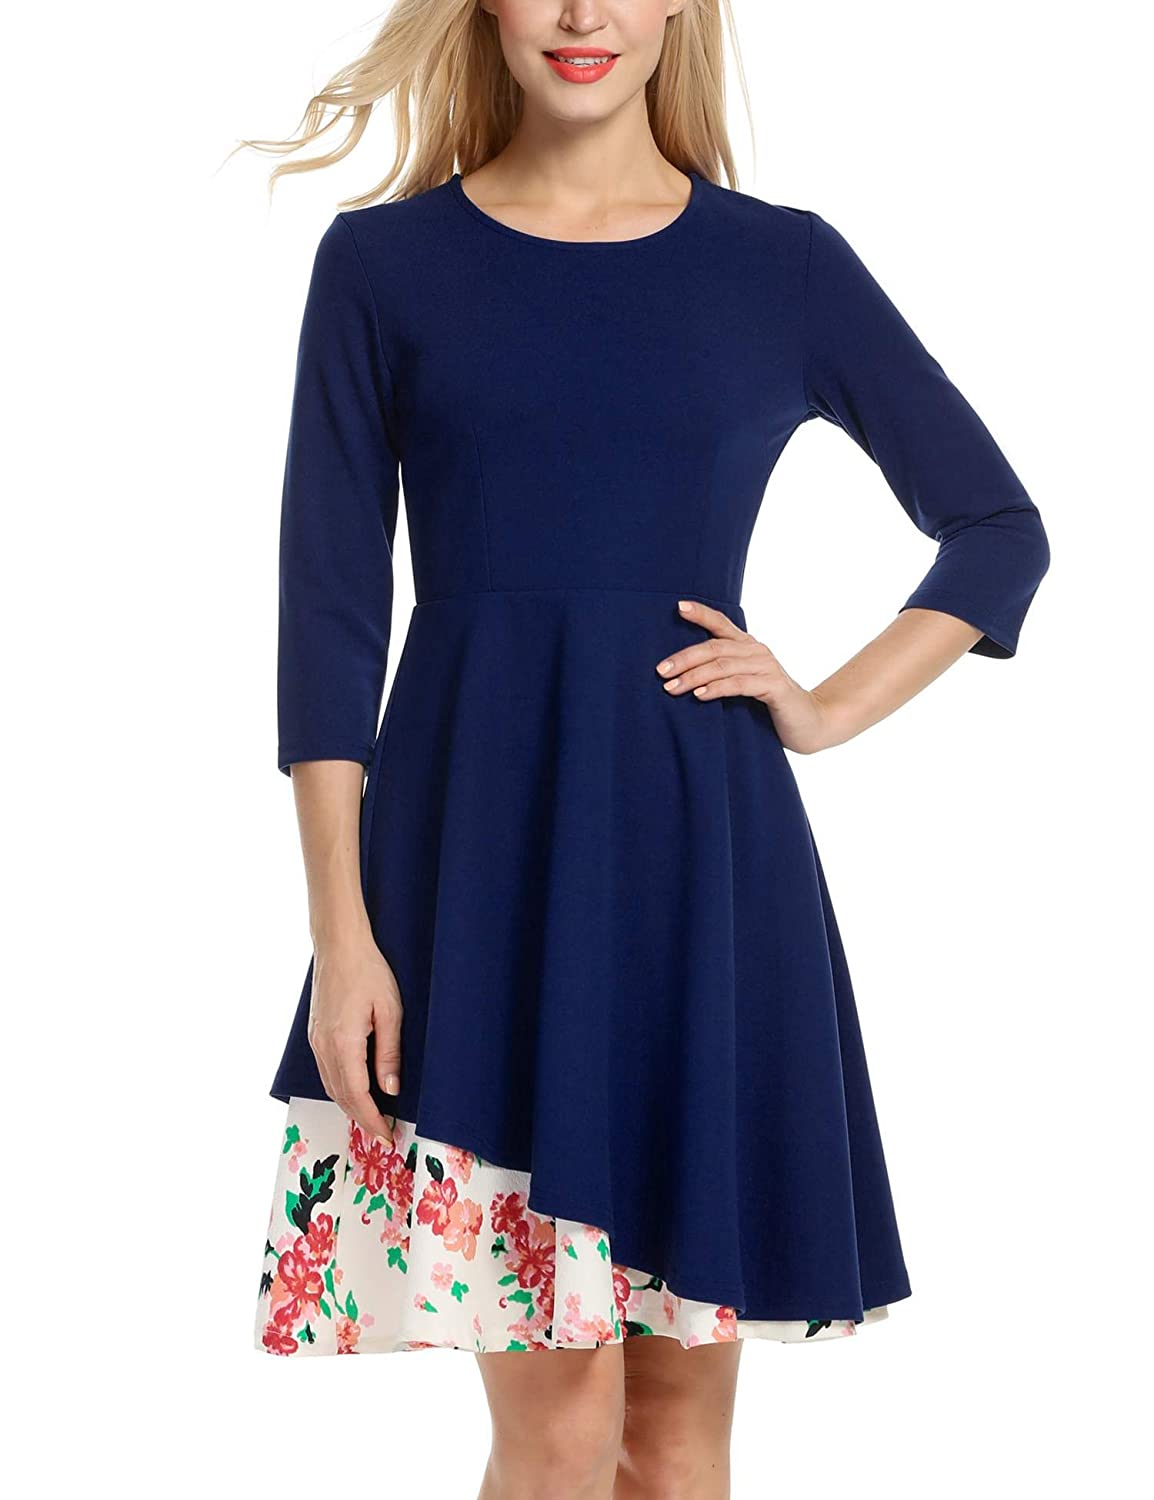 ANGVNS Women's Round Neck 3/4 Sleeve Floral Layer Wedding Cocktail Dress